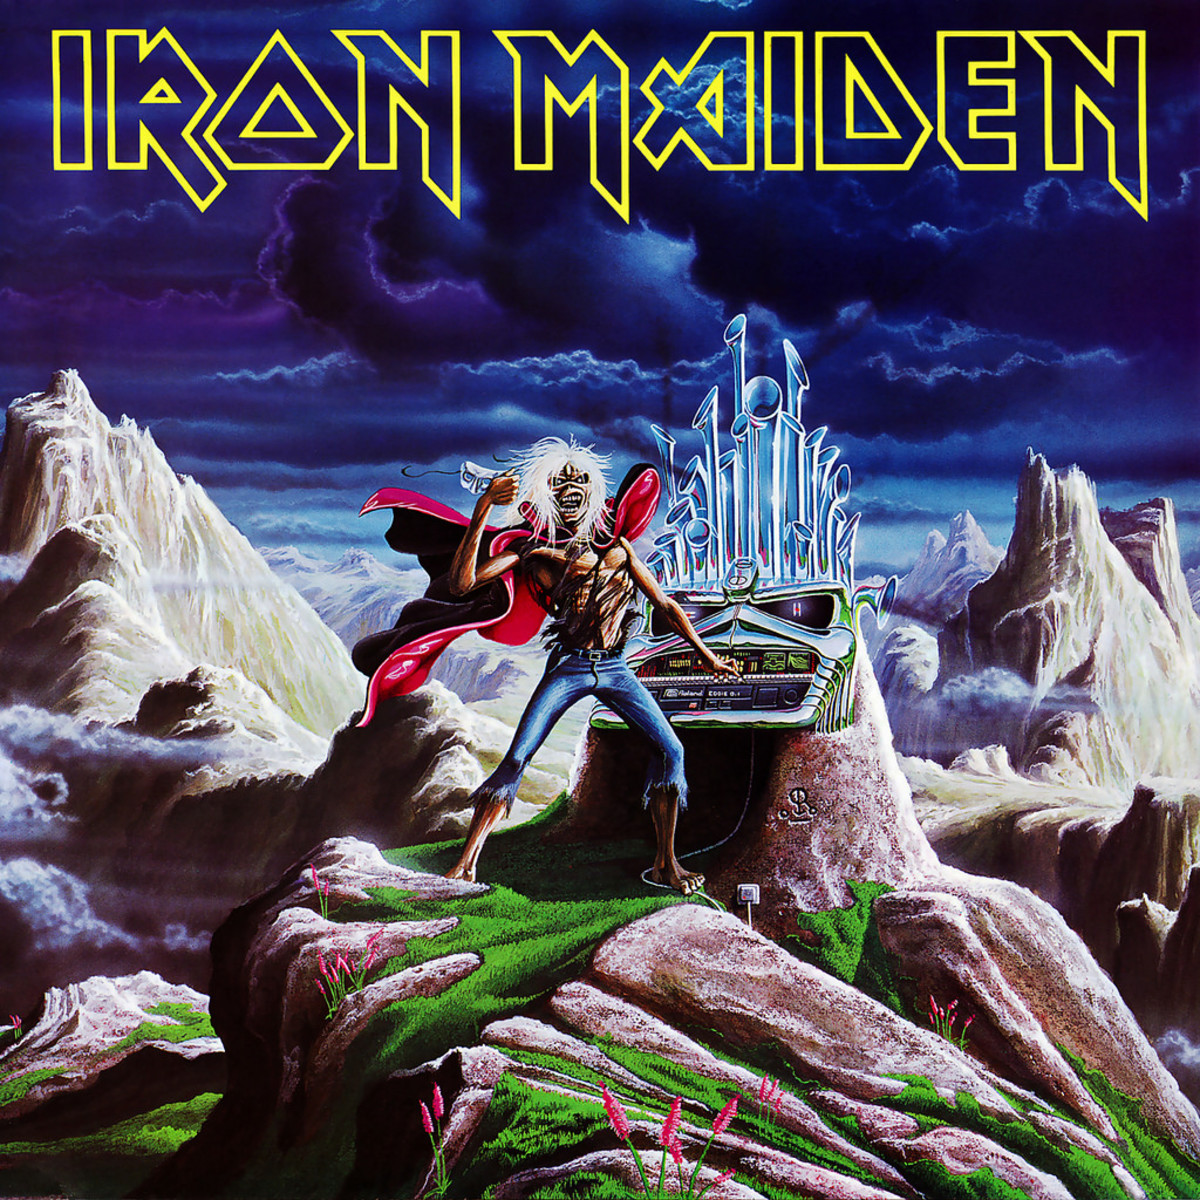 "Iron Maiden ""Run To The Hills"" Live EMI 12 EMIP 5542 12"" Vinyl Single UK Pressing (1985) Picture Sleeve Art by Derek Riggs"